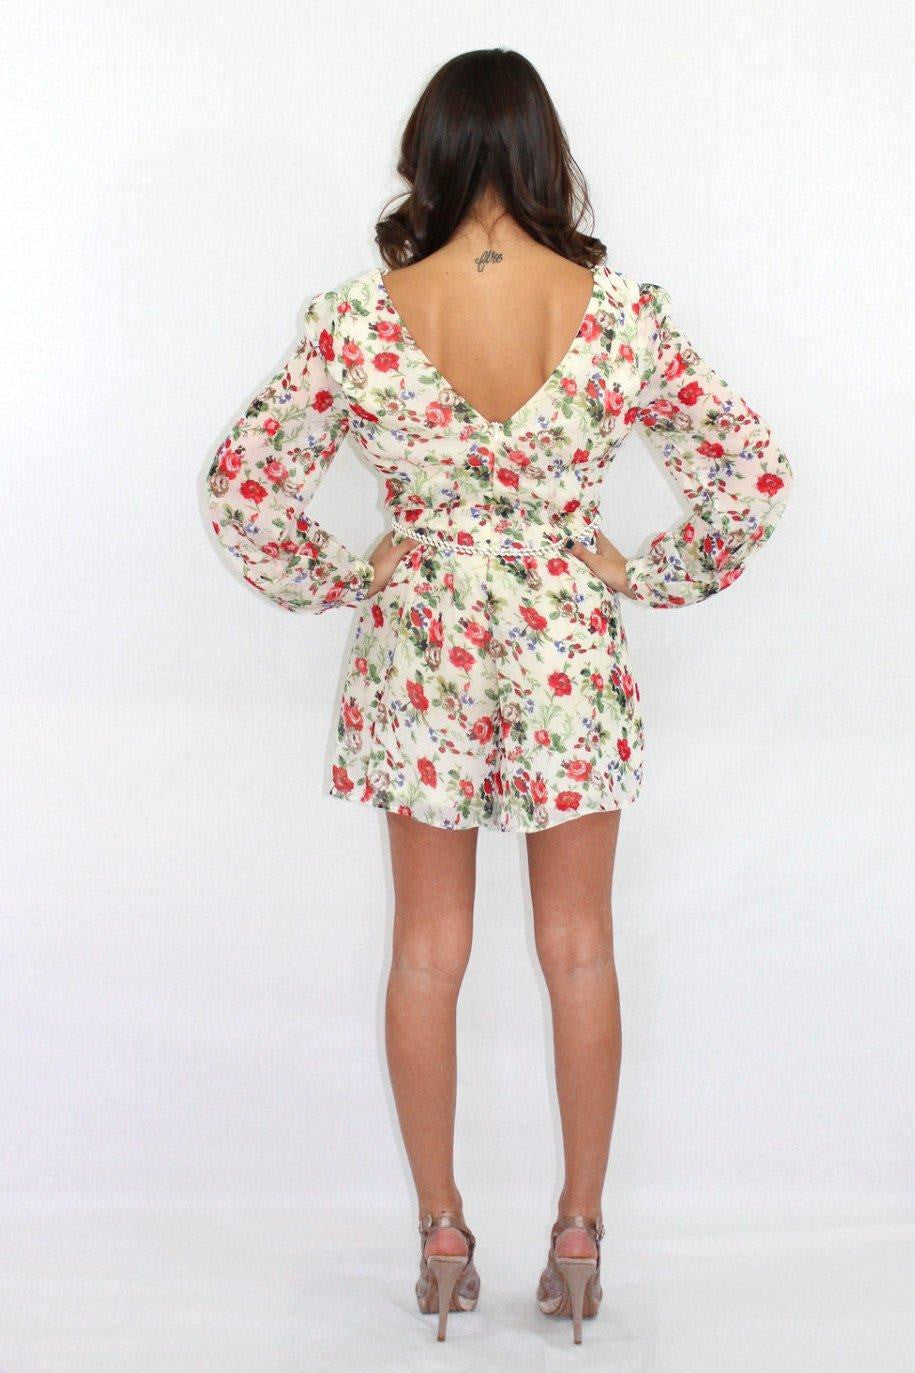 Catch Me If You Can Floral Romper - The Laguna Room